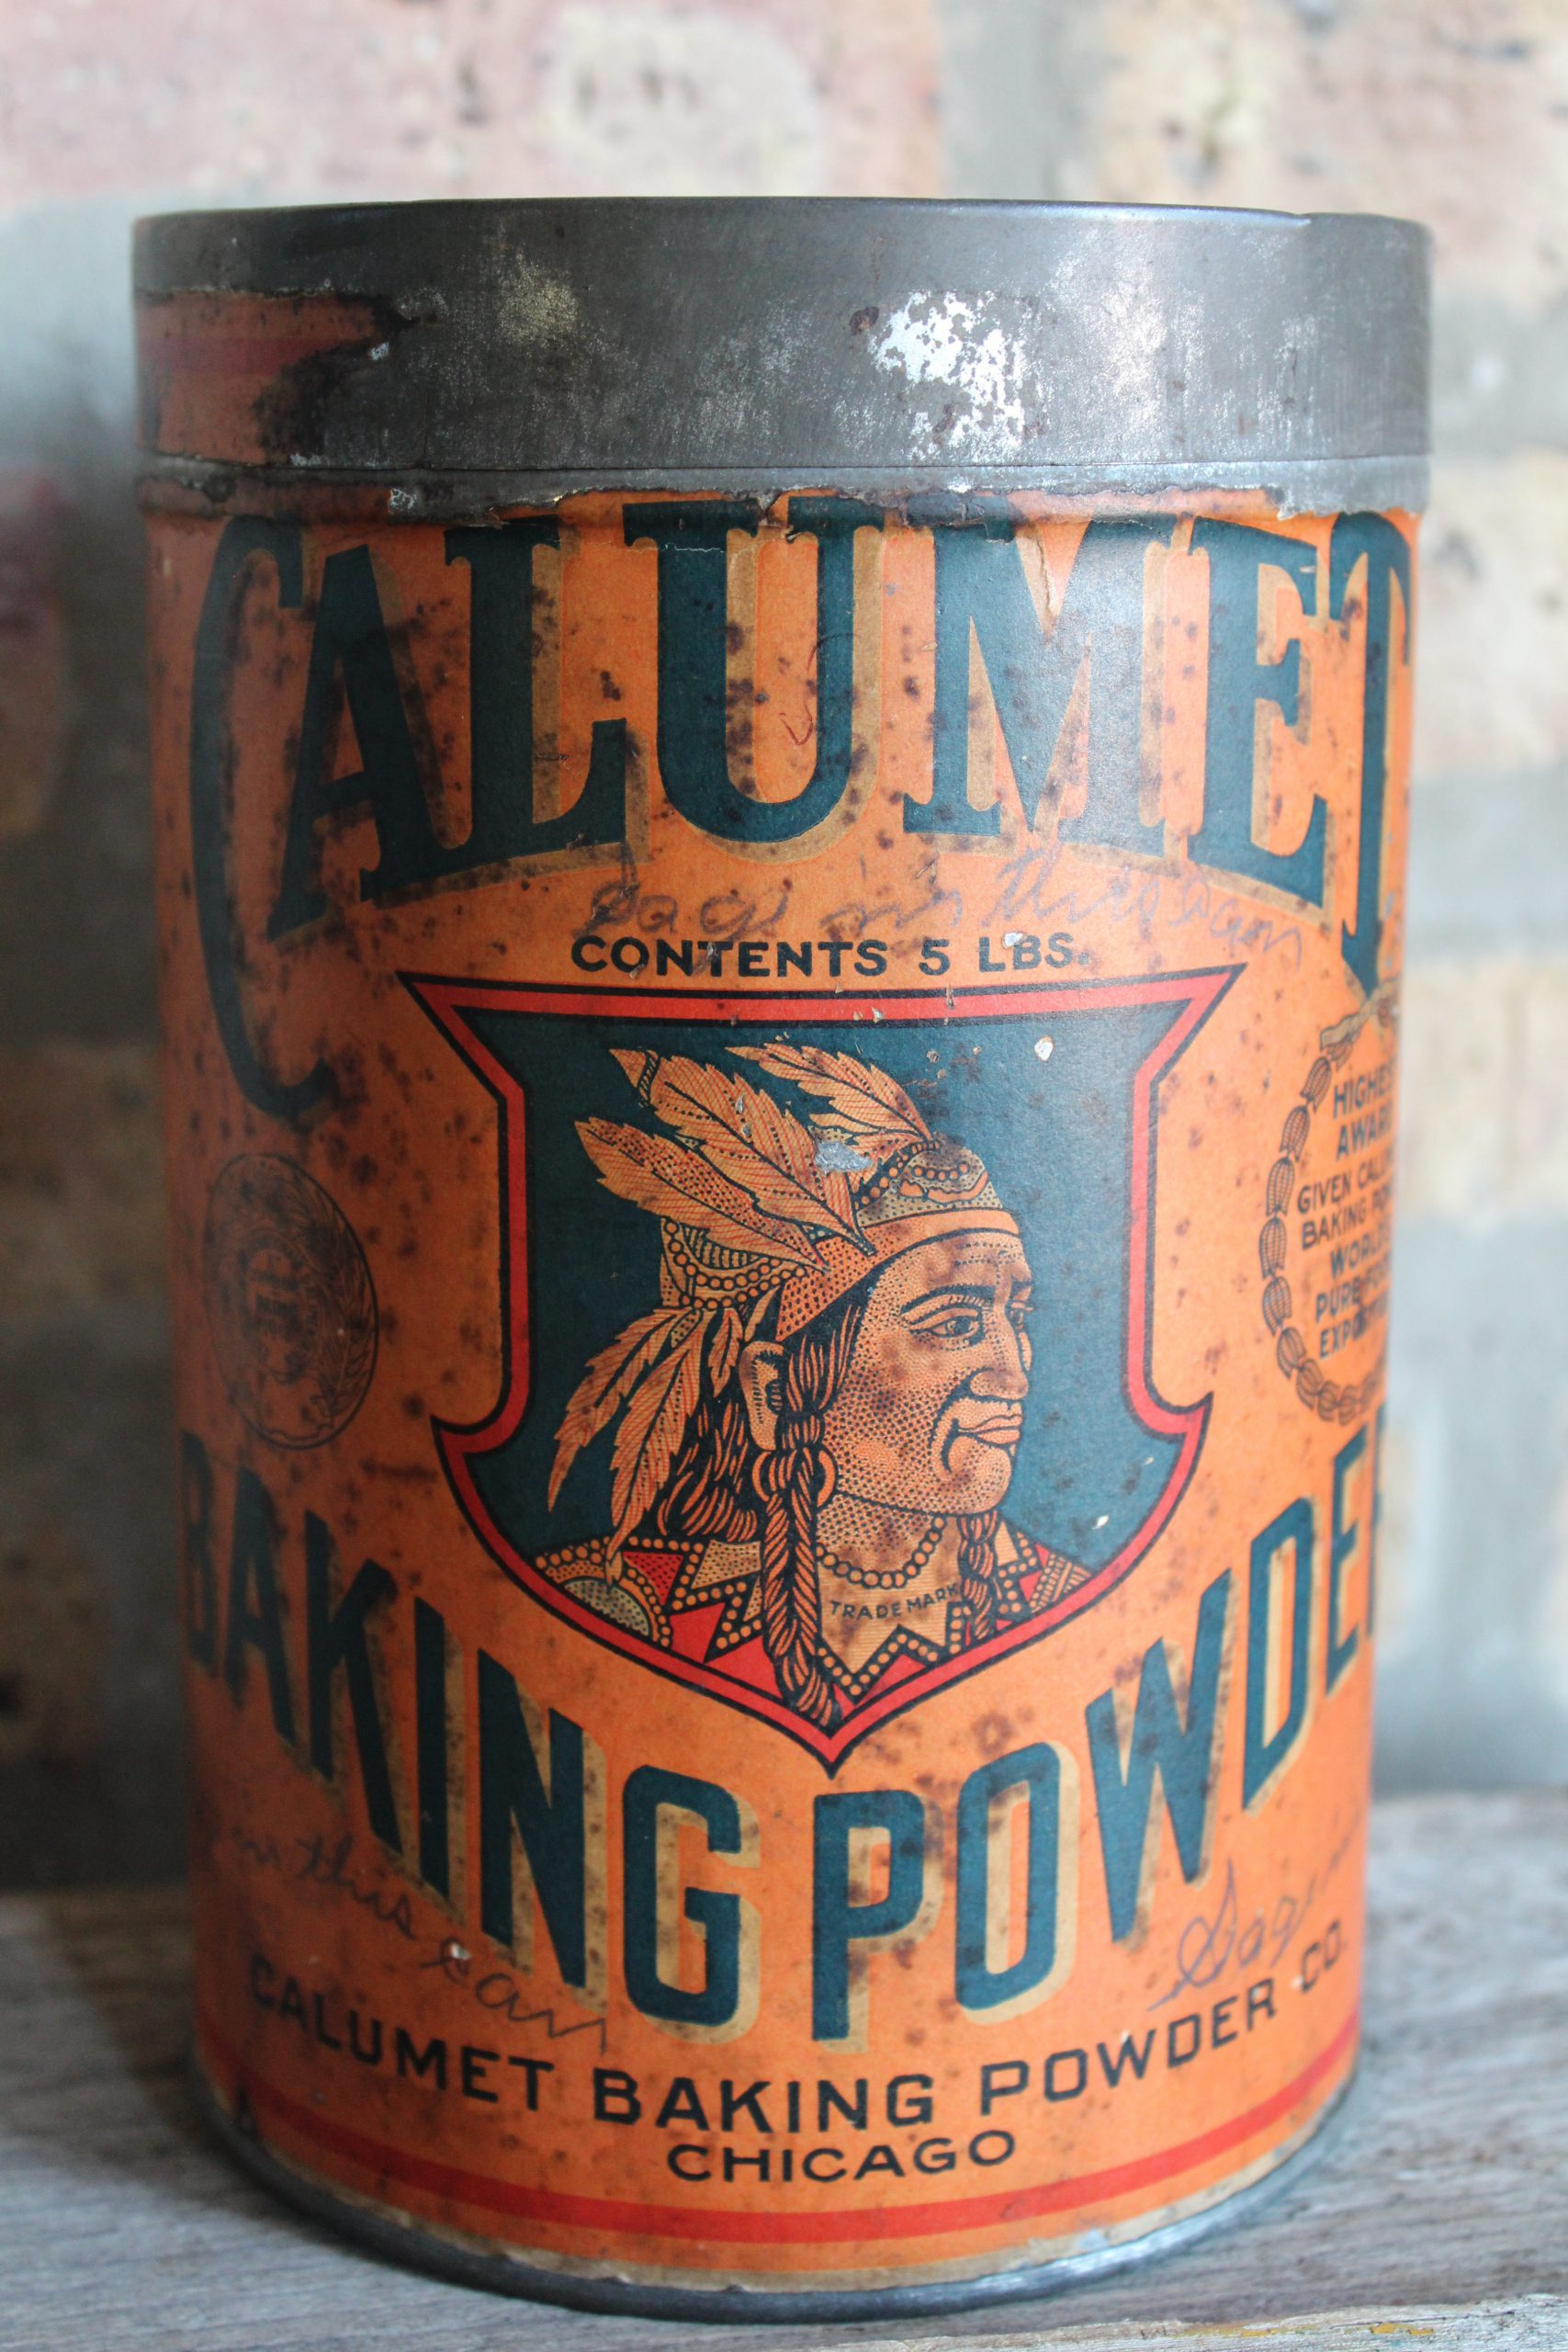 Calumet Baking Powder History